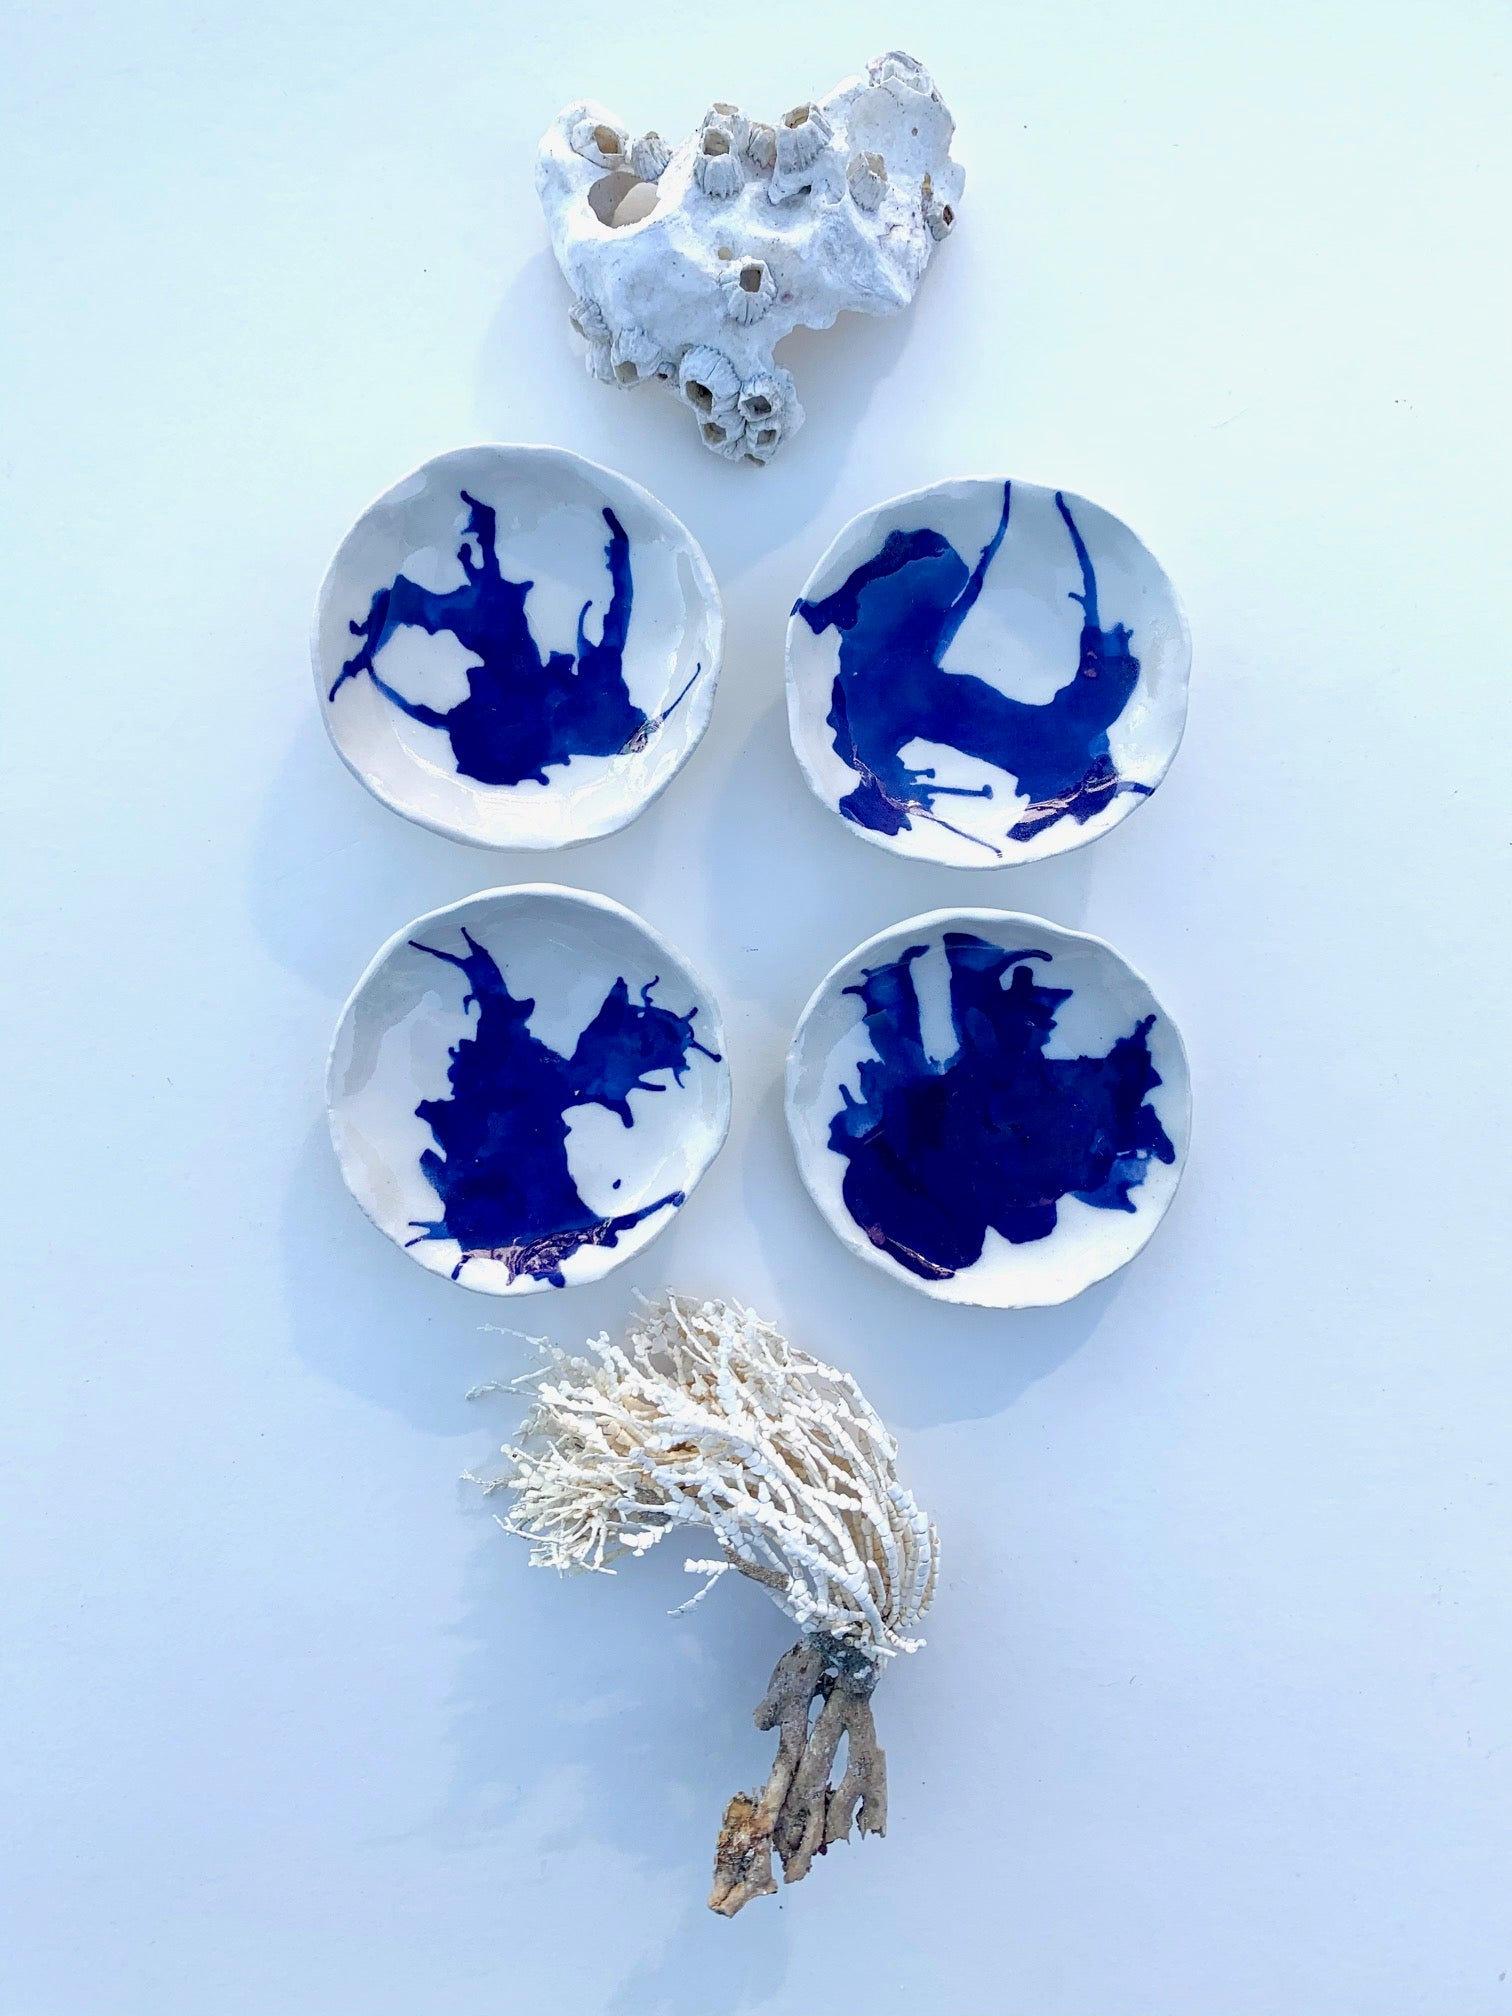 2 cobalt seaweed rests / one of a kind ceramic mini ocean plate sets